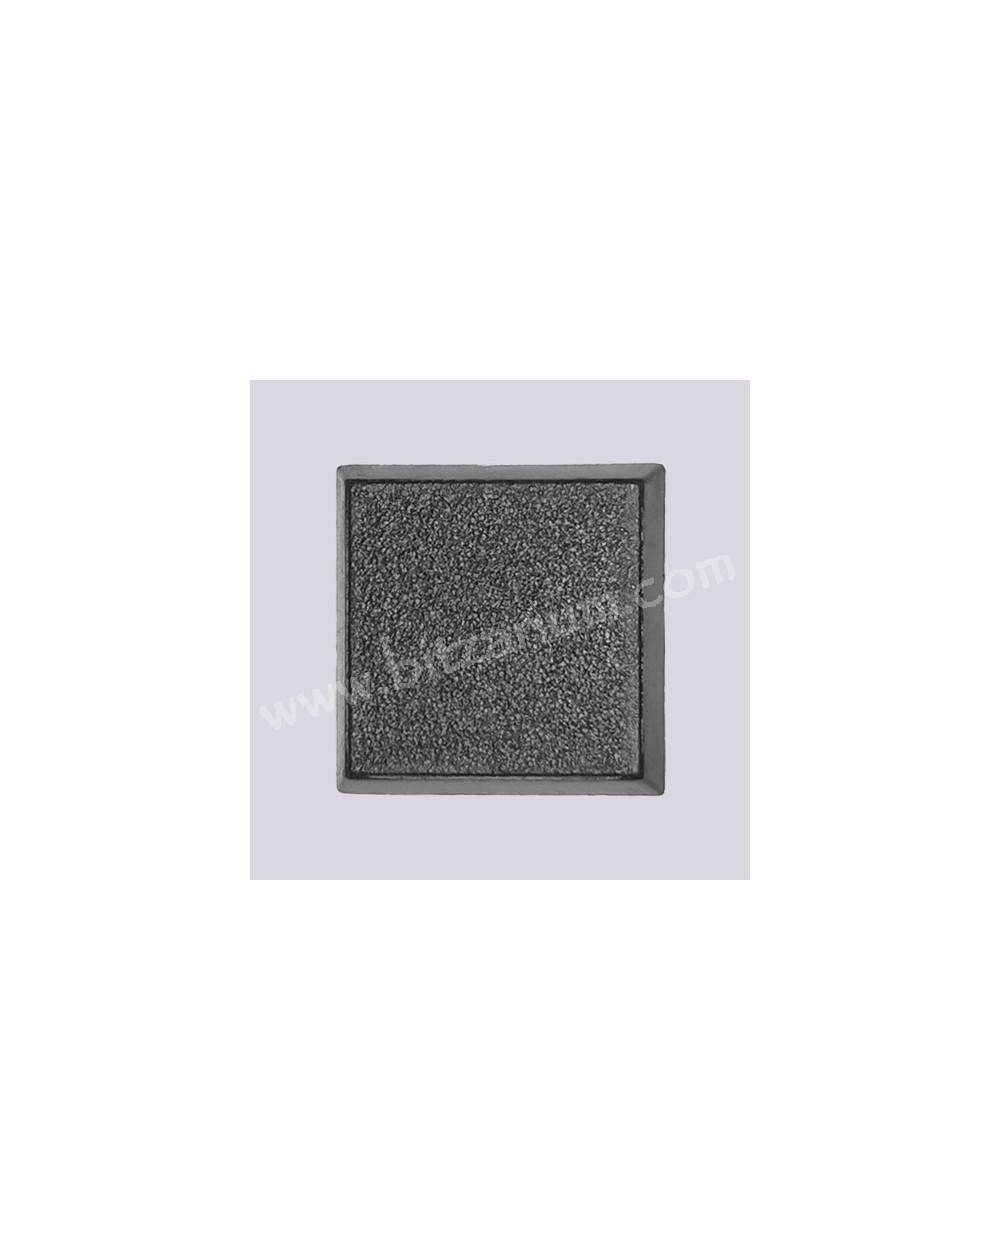 50mm/1,97in solid square Base